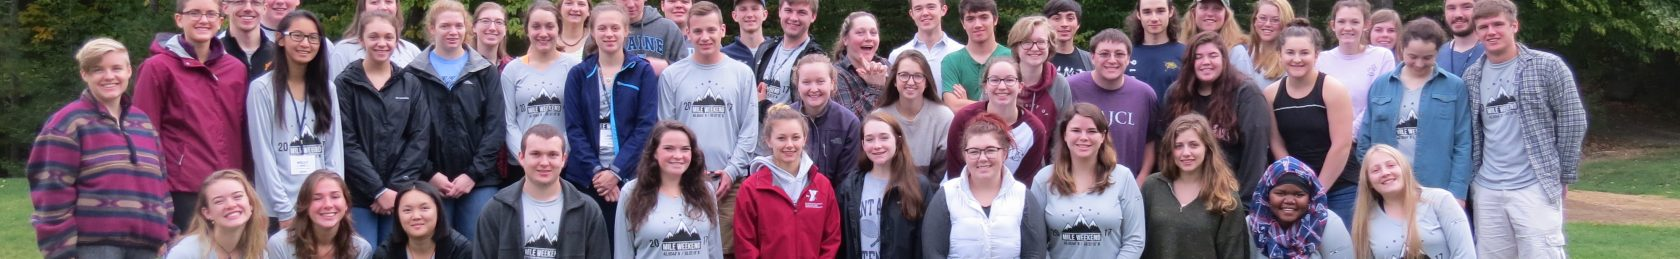 Mitchell Scholars at Baxter State Park